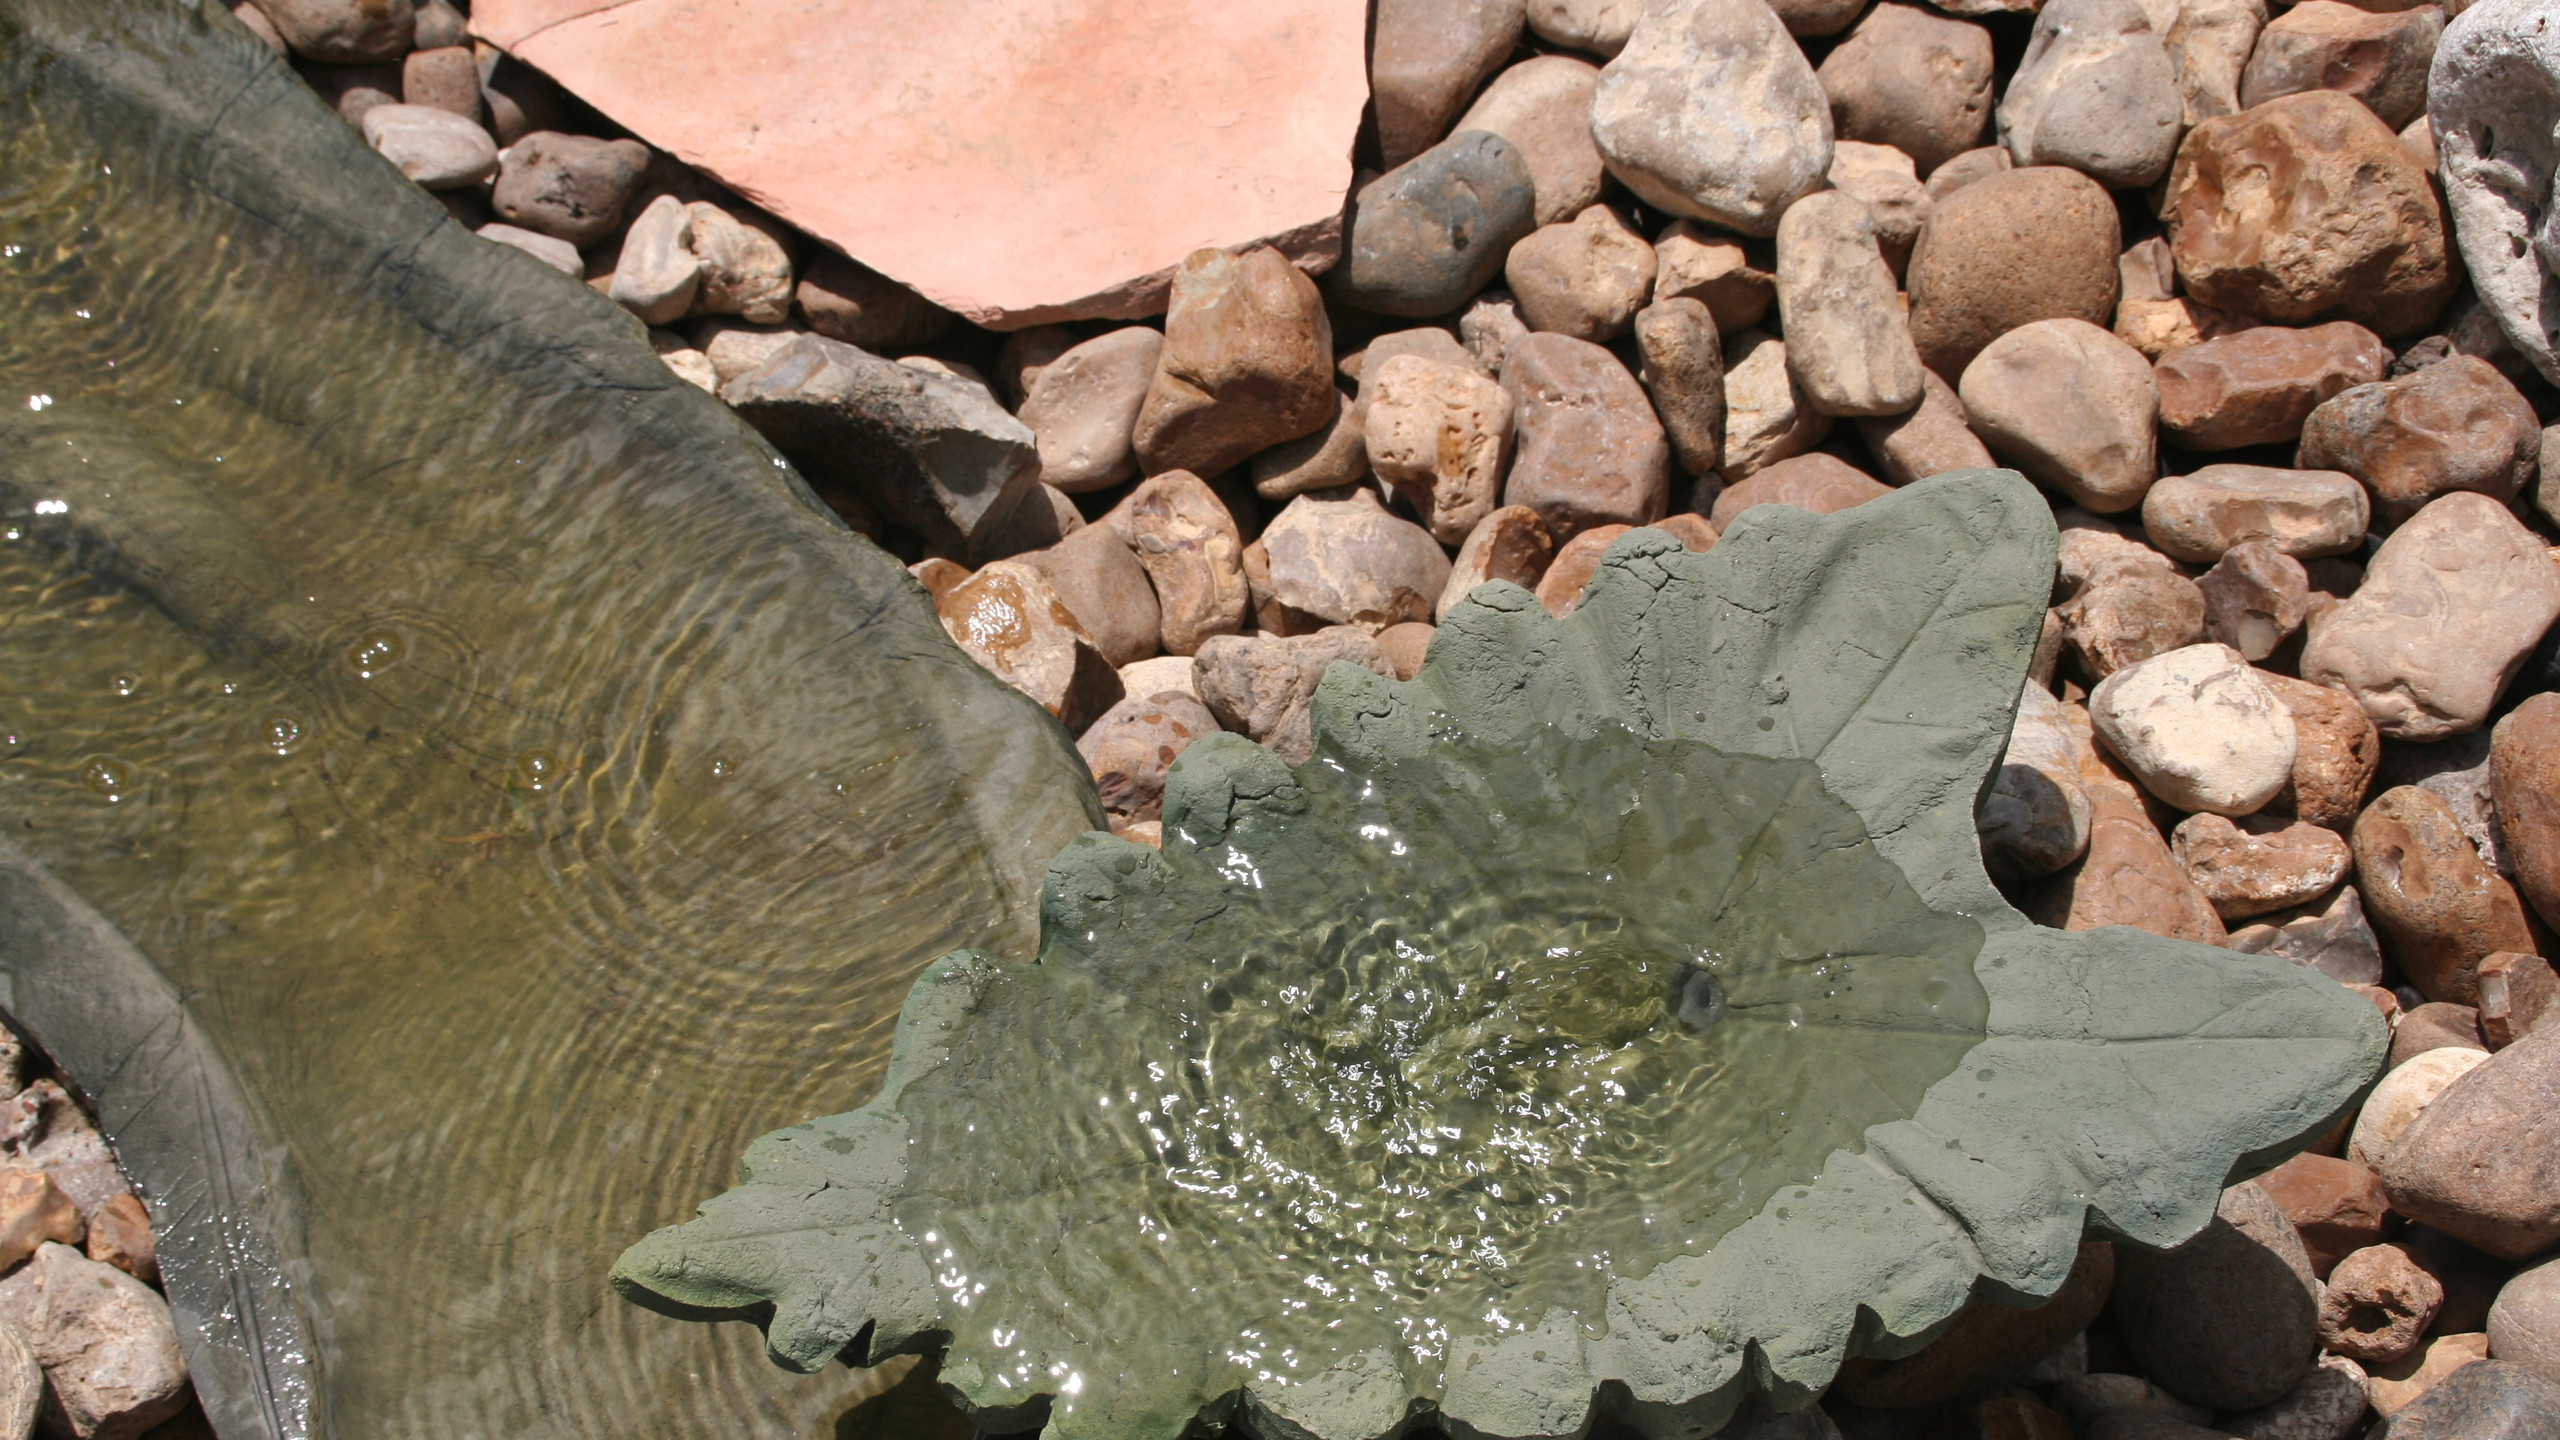 19-Up Close View of Water Feature